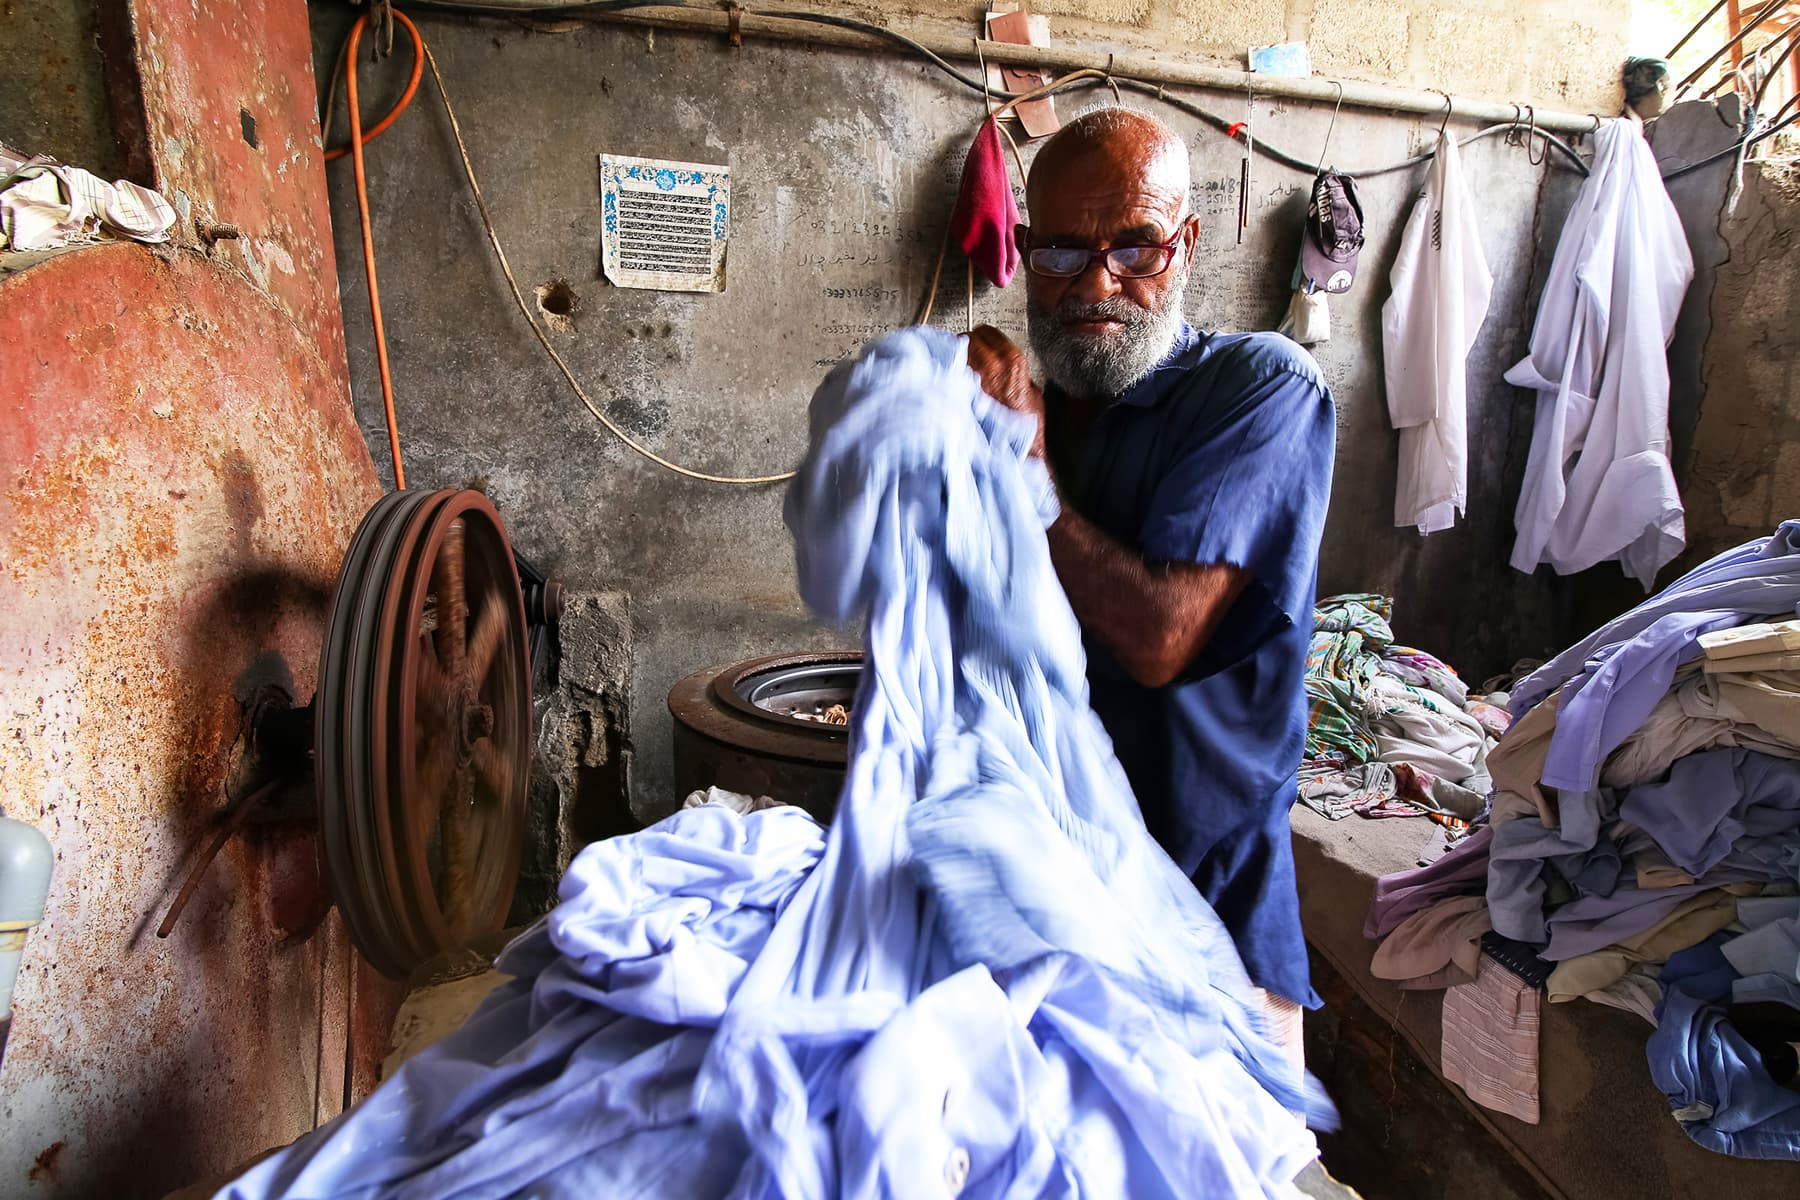 Hanif transfers washed and wet clothes to put into the dryer to spin out the water.